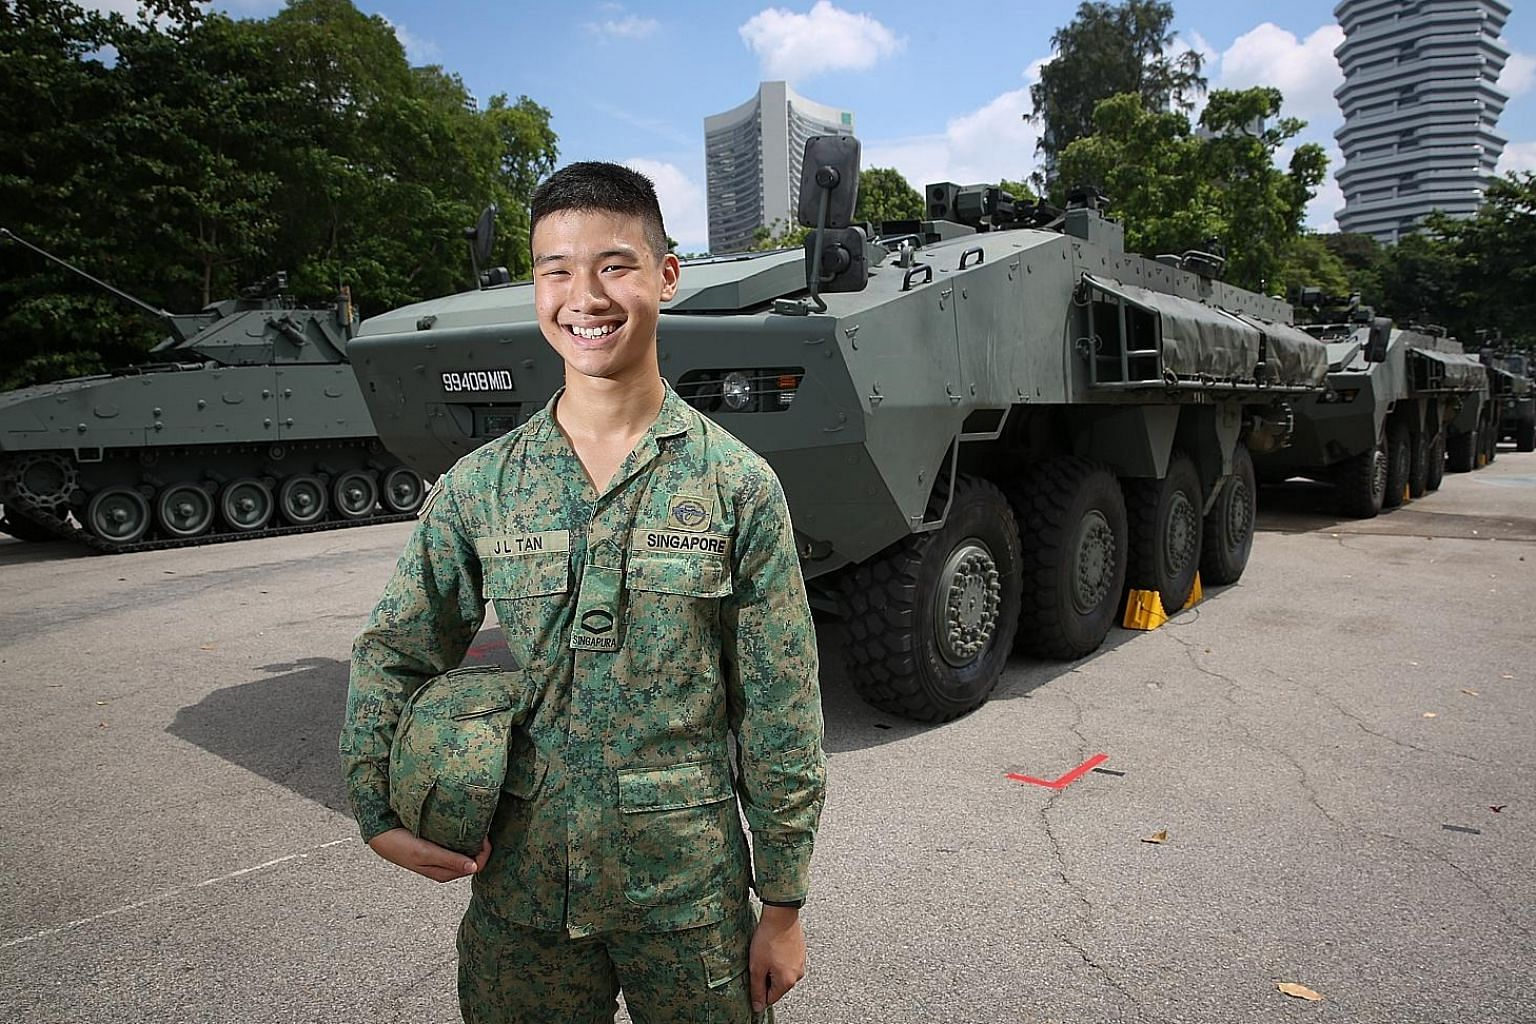 Lance Corporal Tan Jun Lin is driving one of three SAF Terrex Infantry Carrier Vehicles as part of the Dynamic Defence Display.